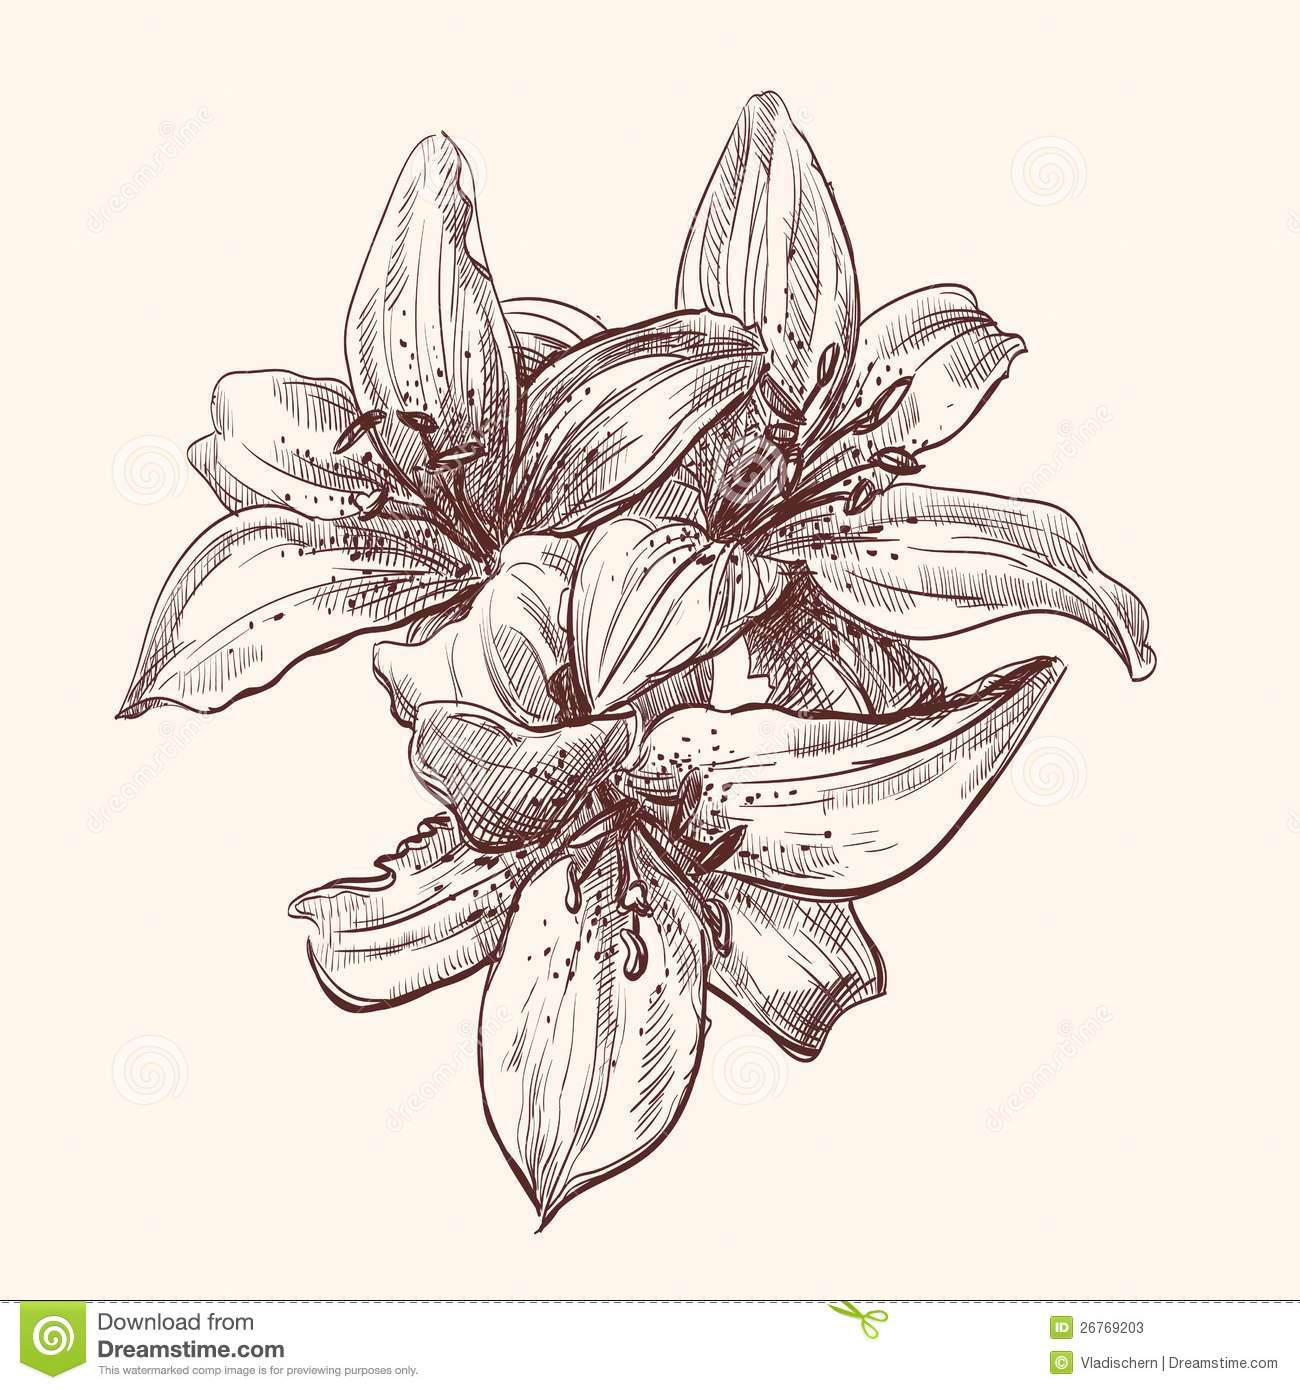 It is a picture of Crazy Tiger Lily Flower Drawing